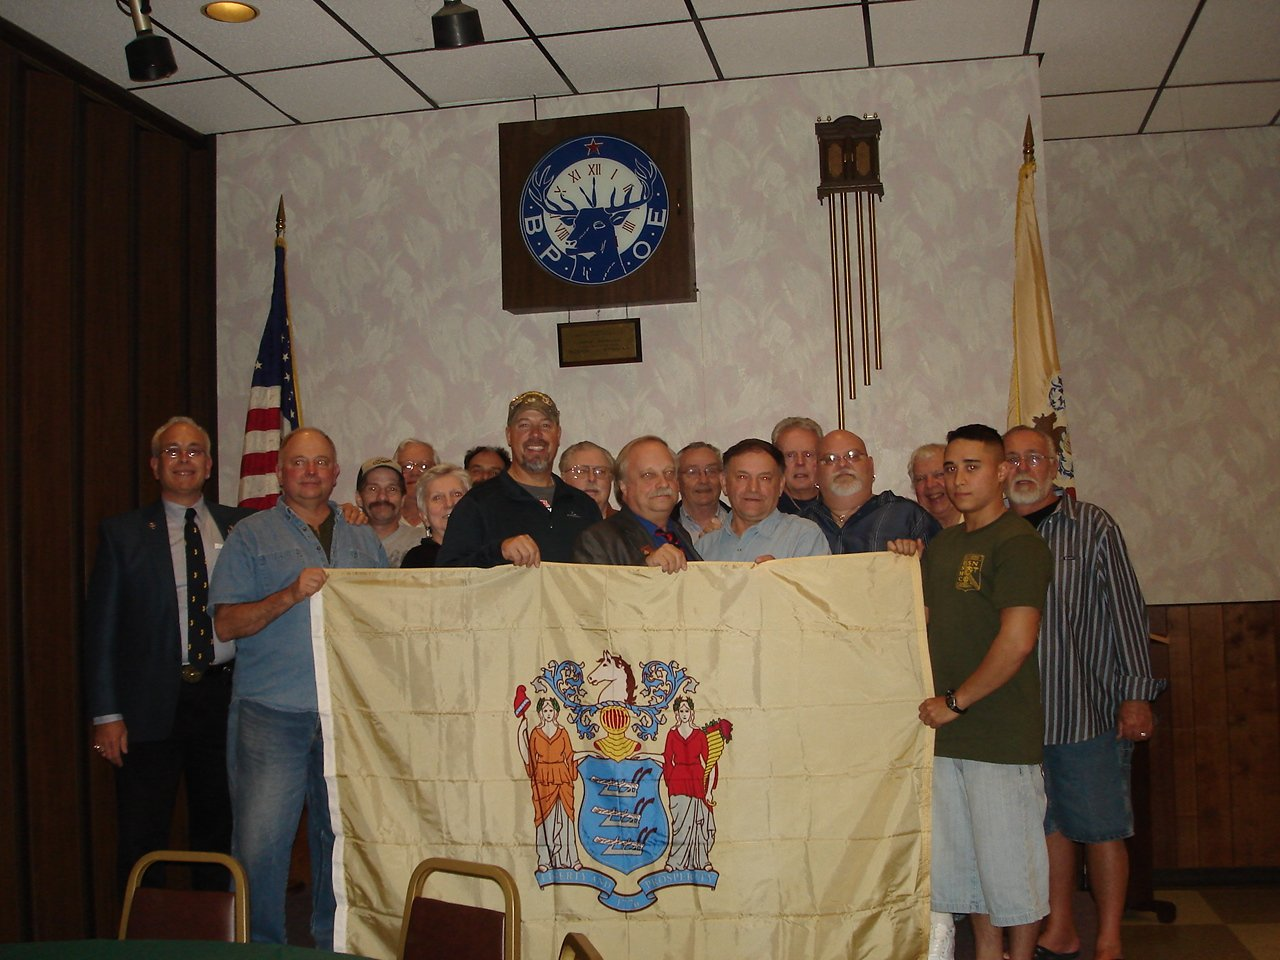 ELKS 105 and SCOTT KING